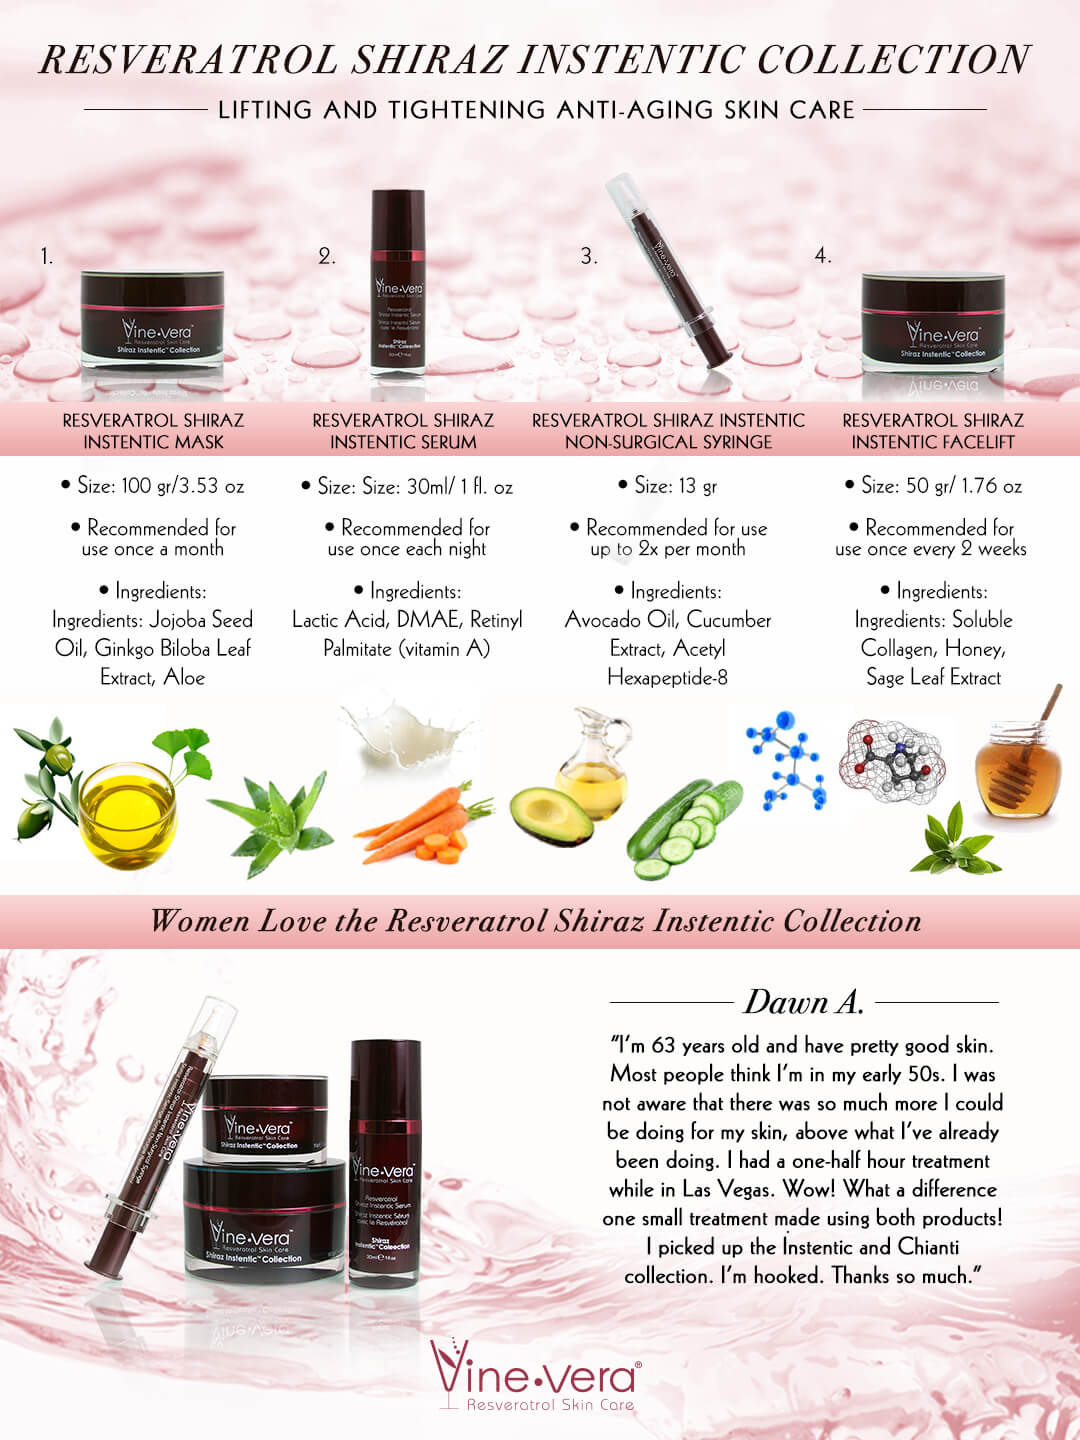 Vine Vera Shiraz Instentic Collection infographic